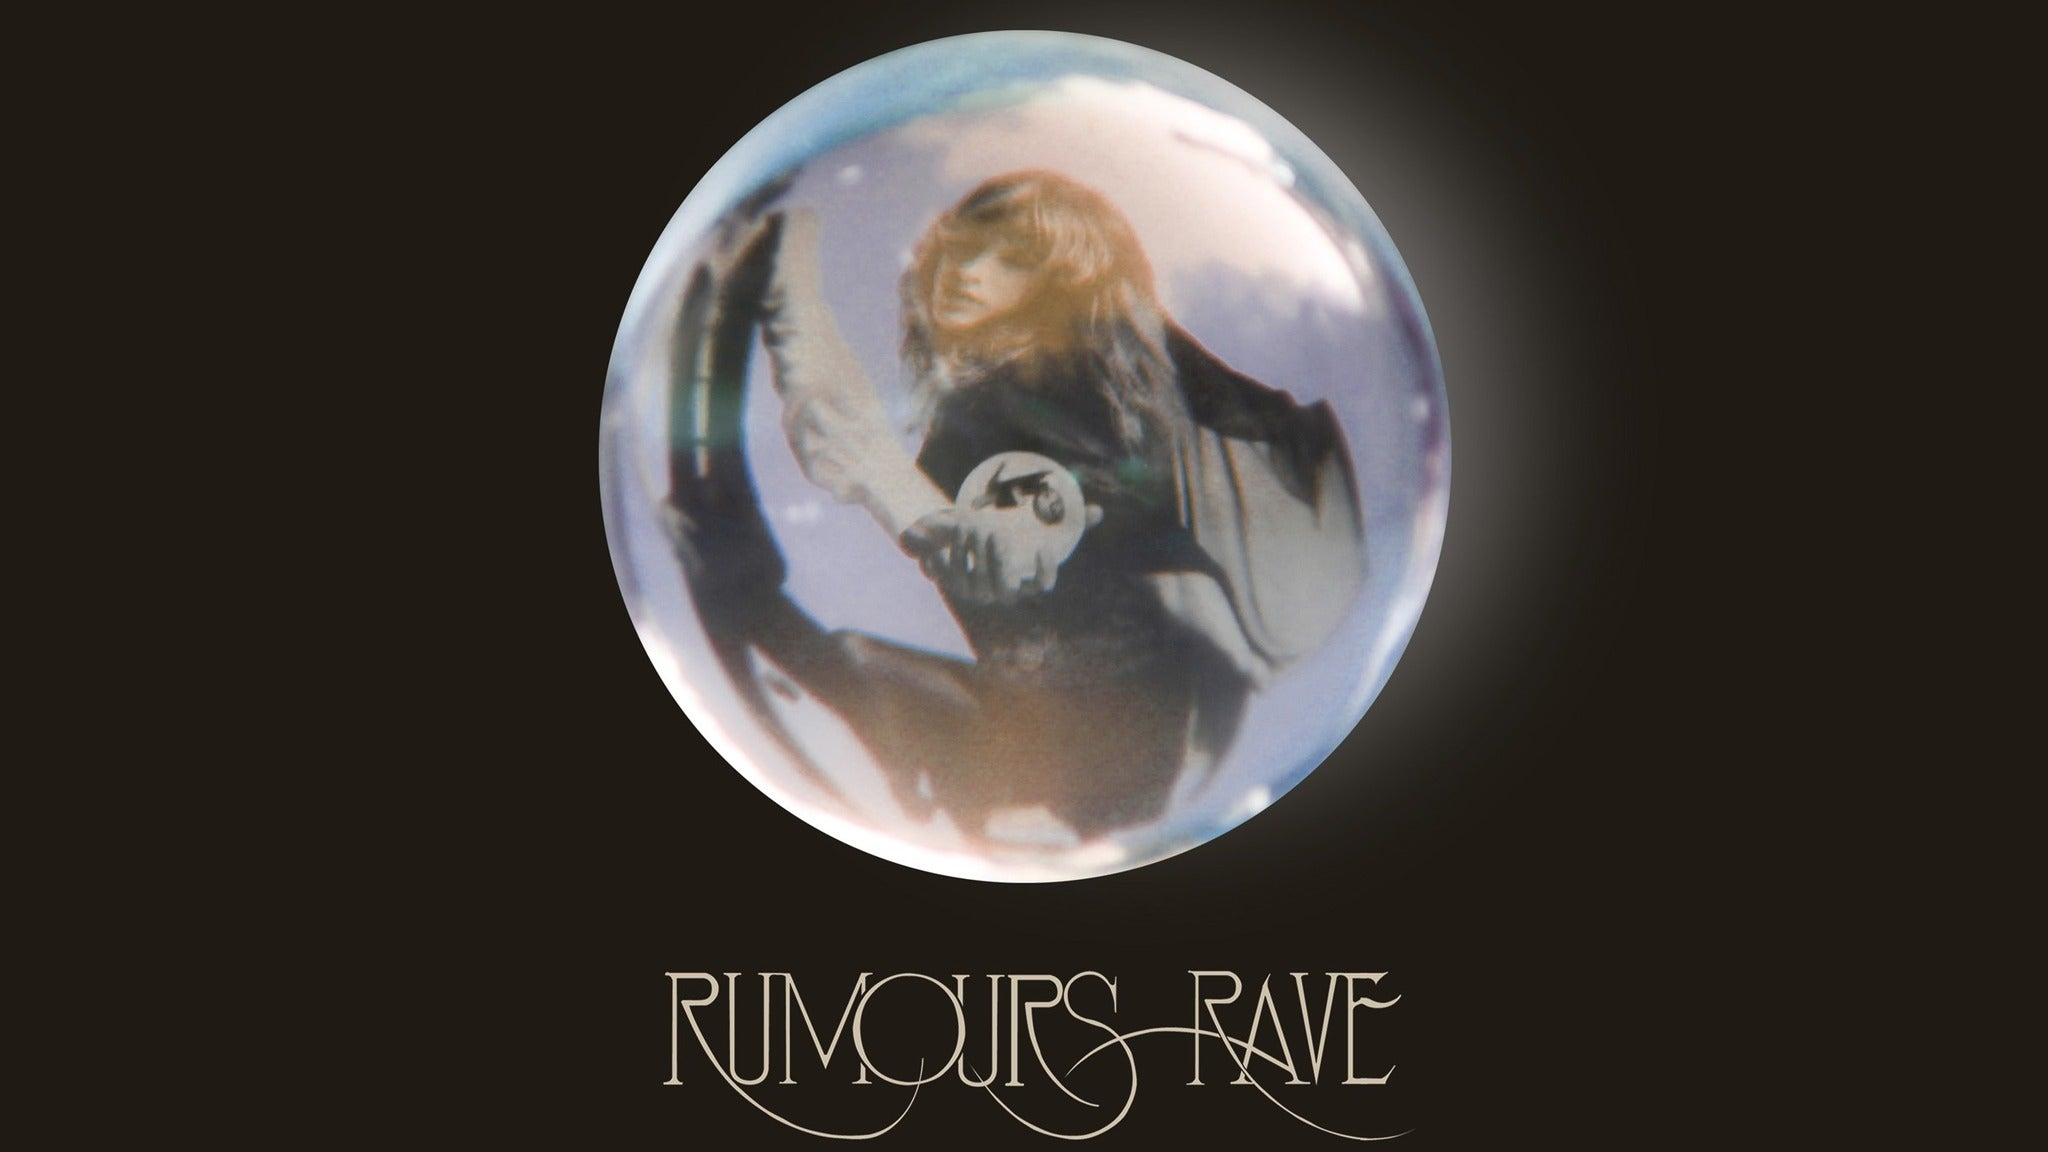 Fleetmac Wood Presents Rumours Rave at Port City Music Hall